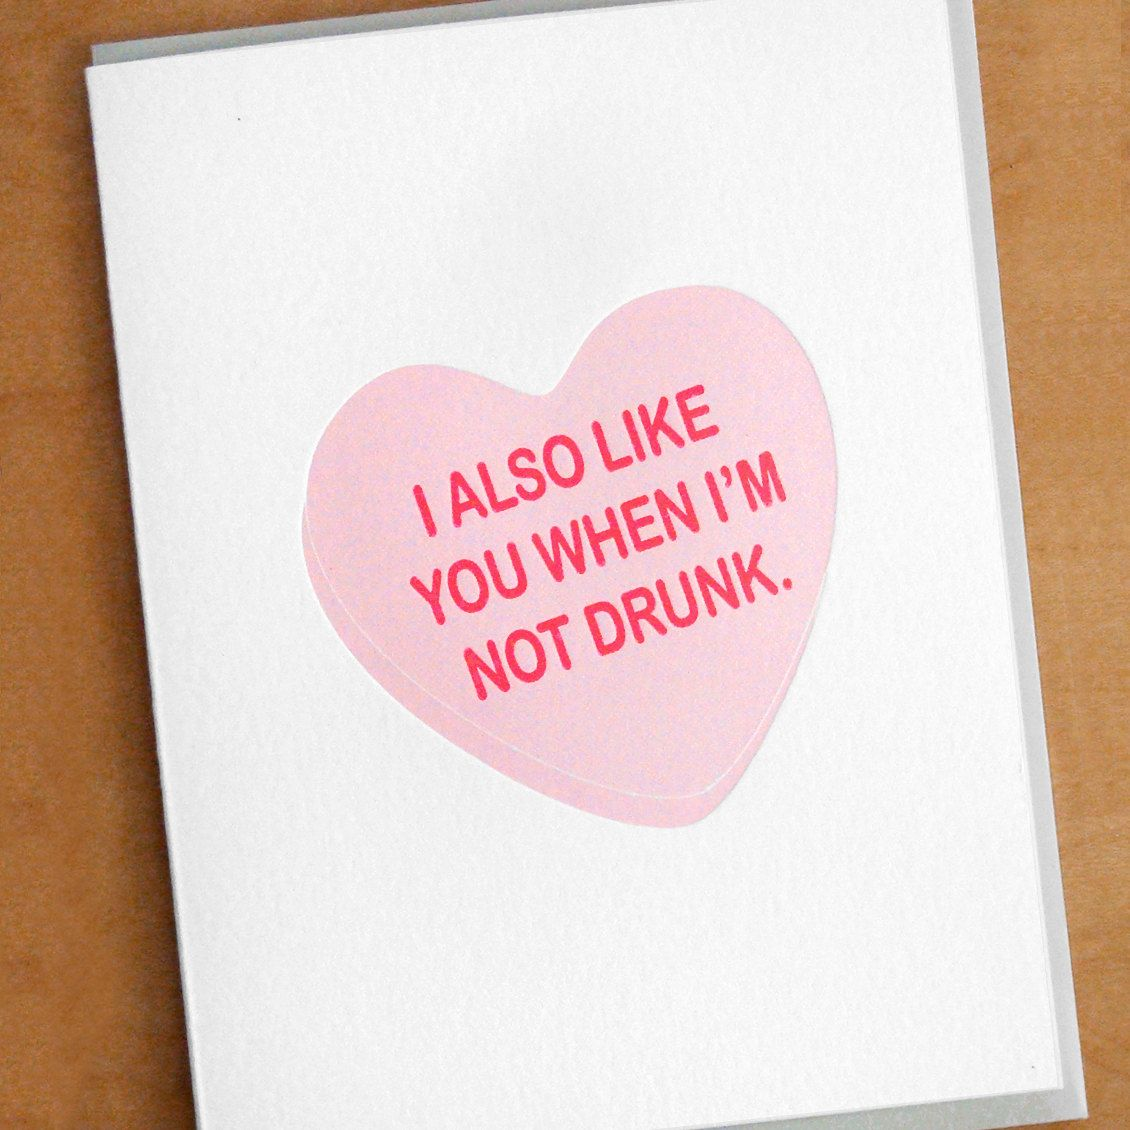 I also like you when I\'m not drunk - Letterpress Valentine\'s Card ...